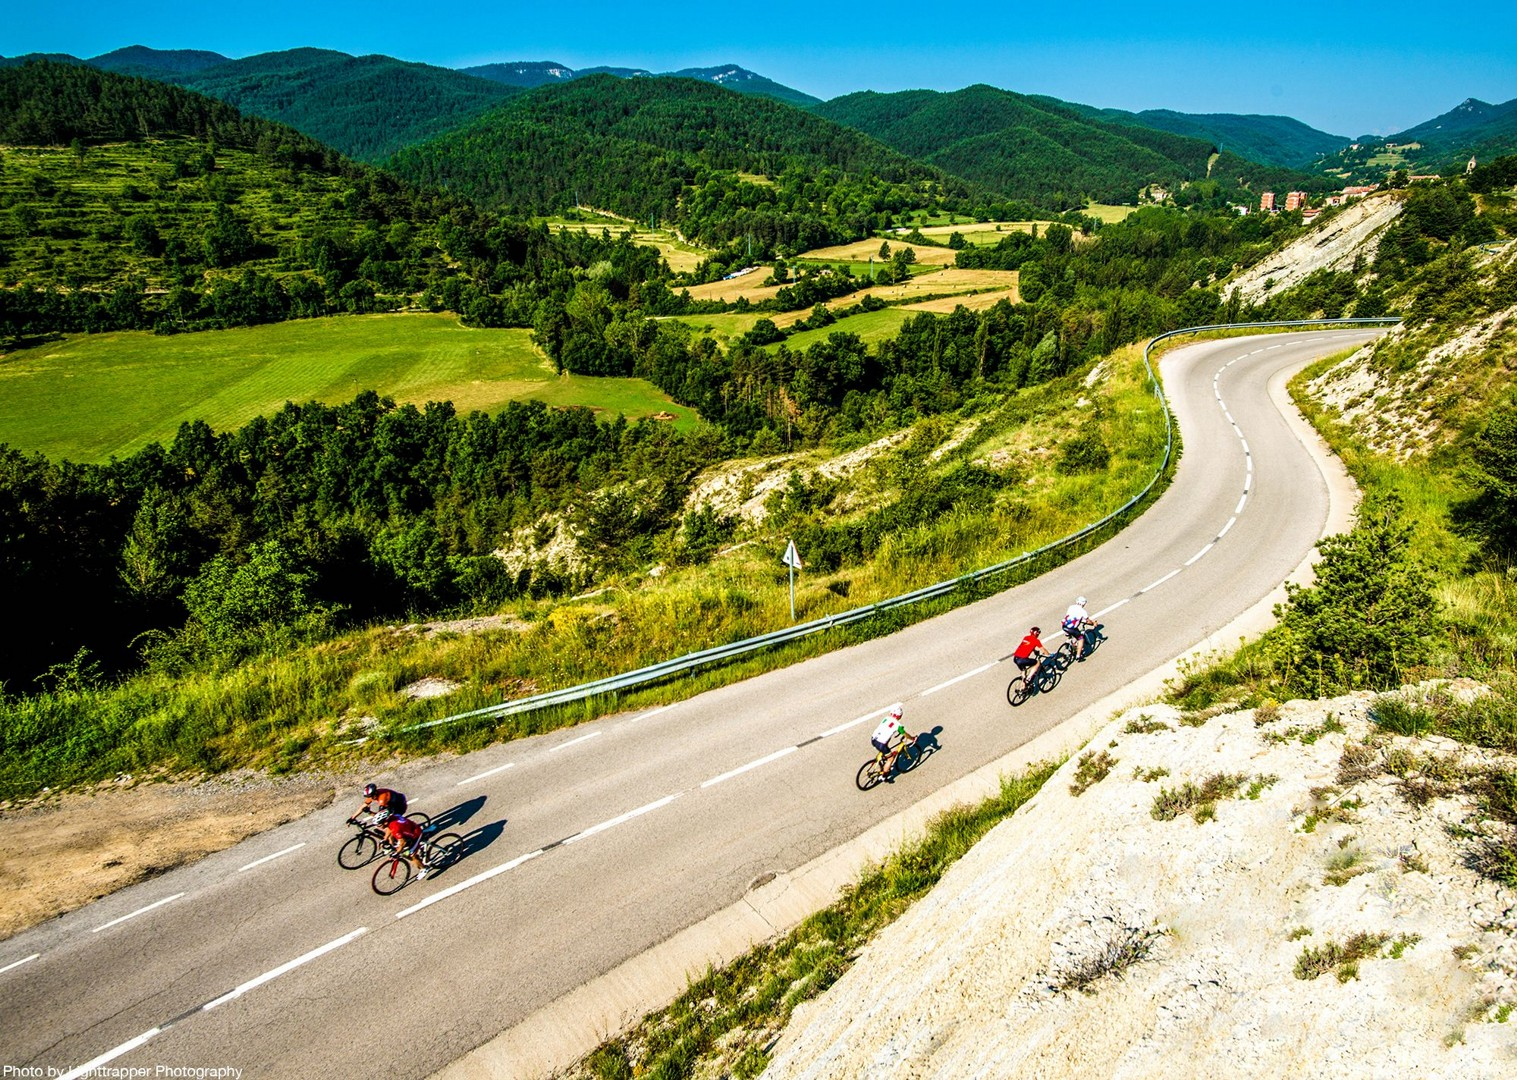 northern-spain-road-cycling-holiday-coast-to-coast.jpg - NEW! Spain - Spanish Pyrenees Coast to Coast - Road Cycling